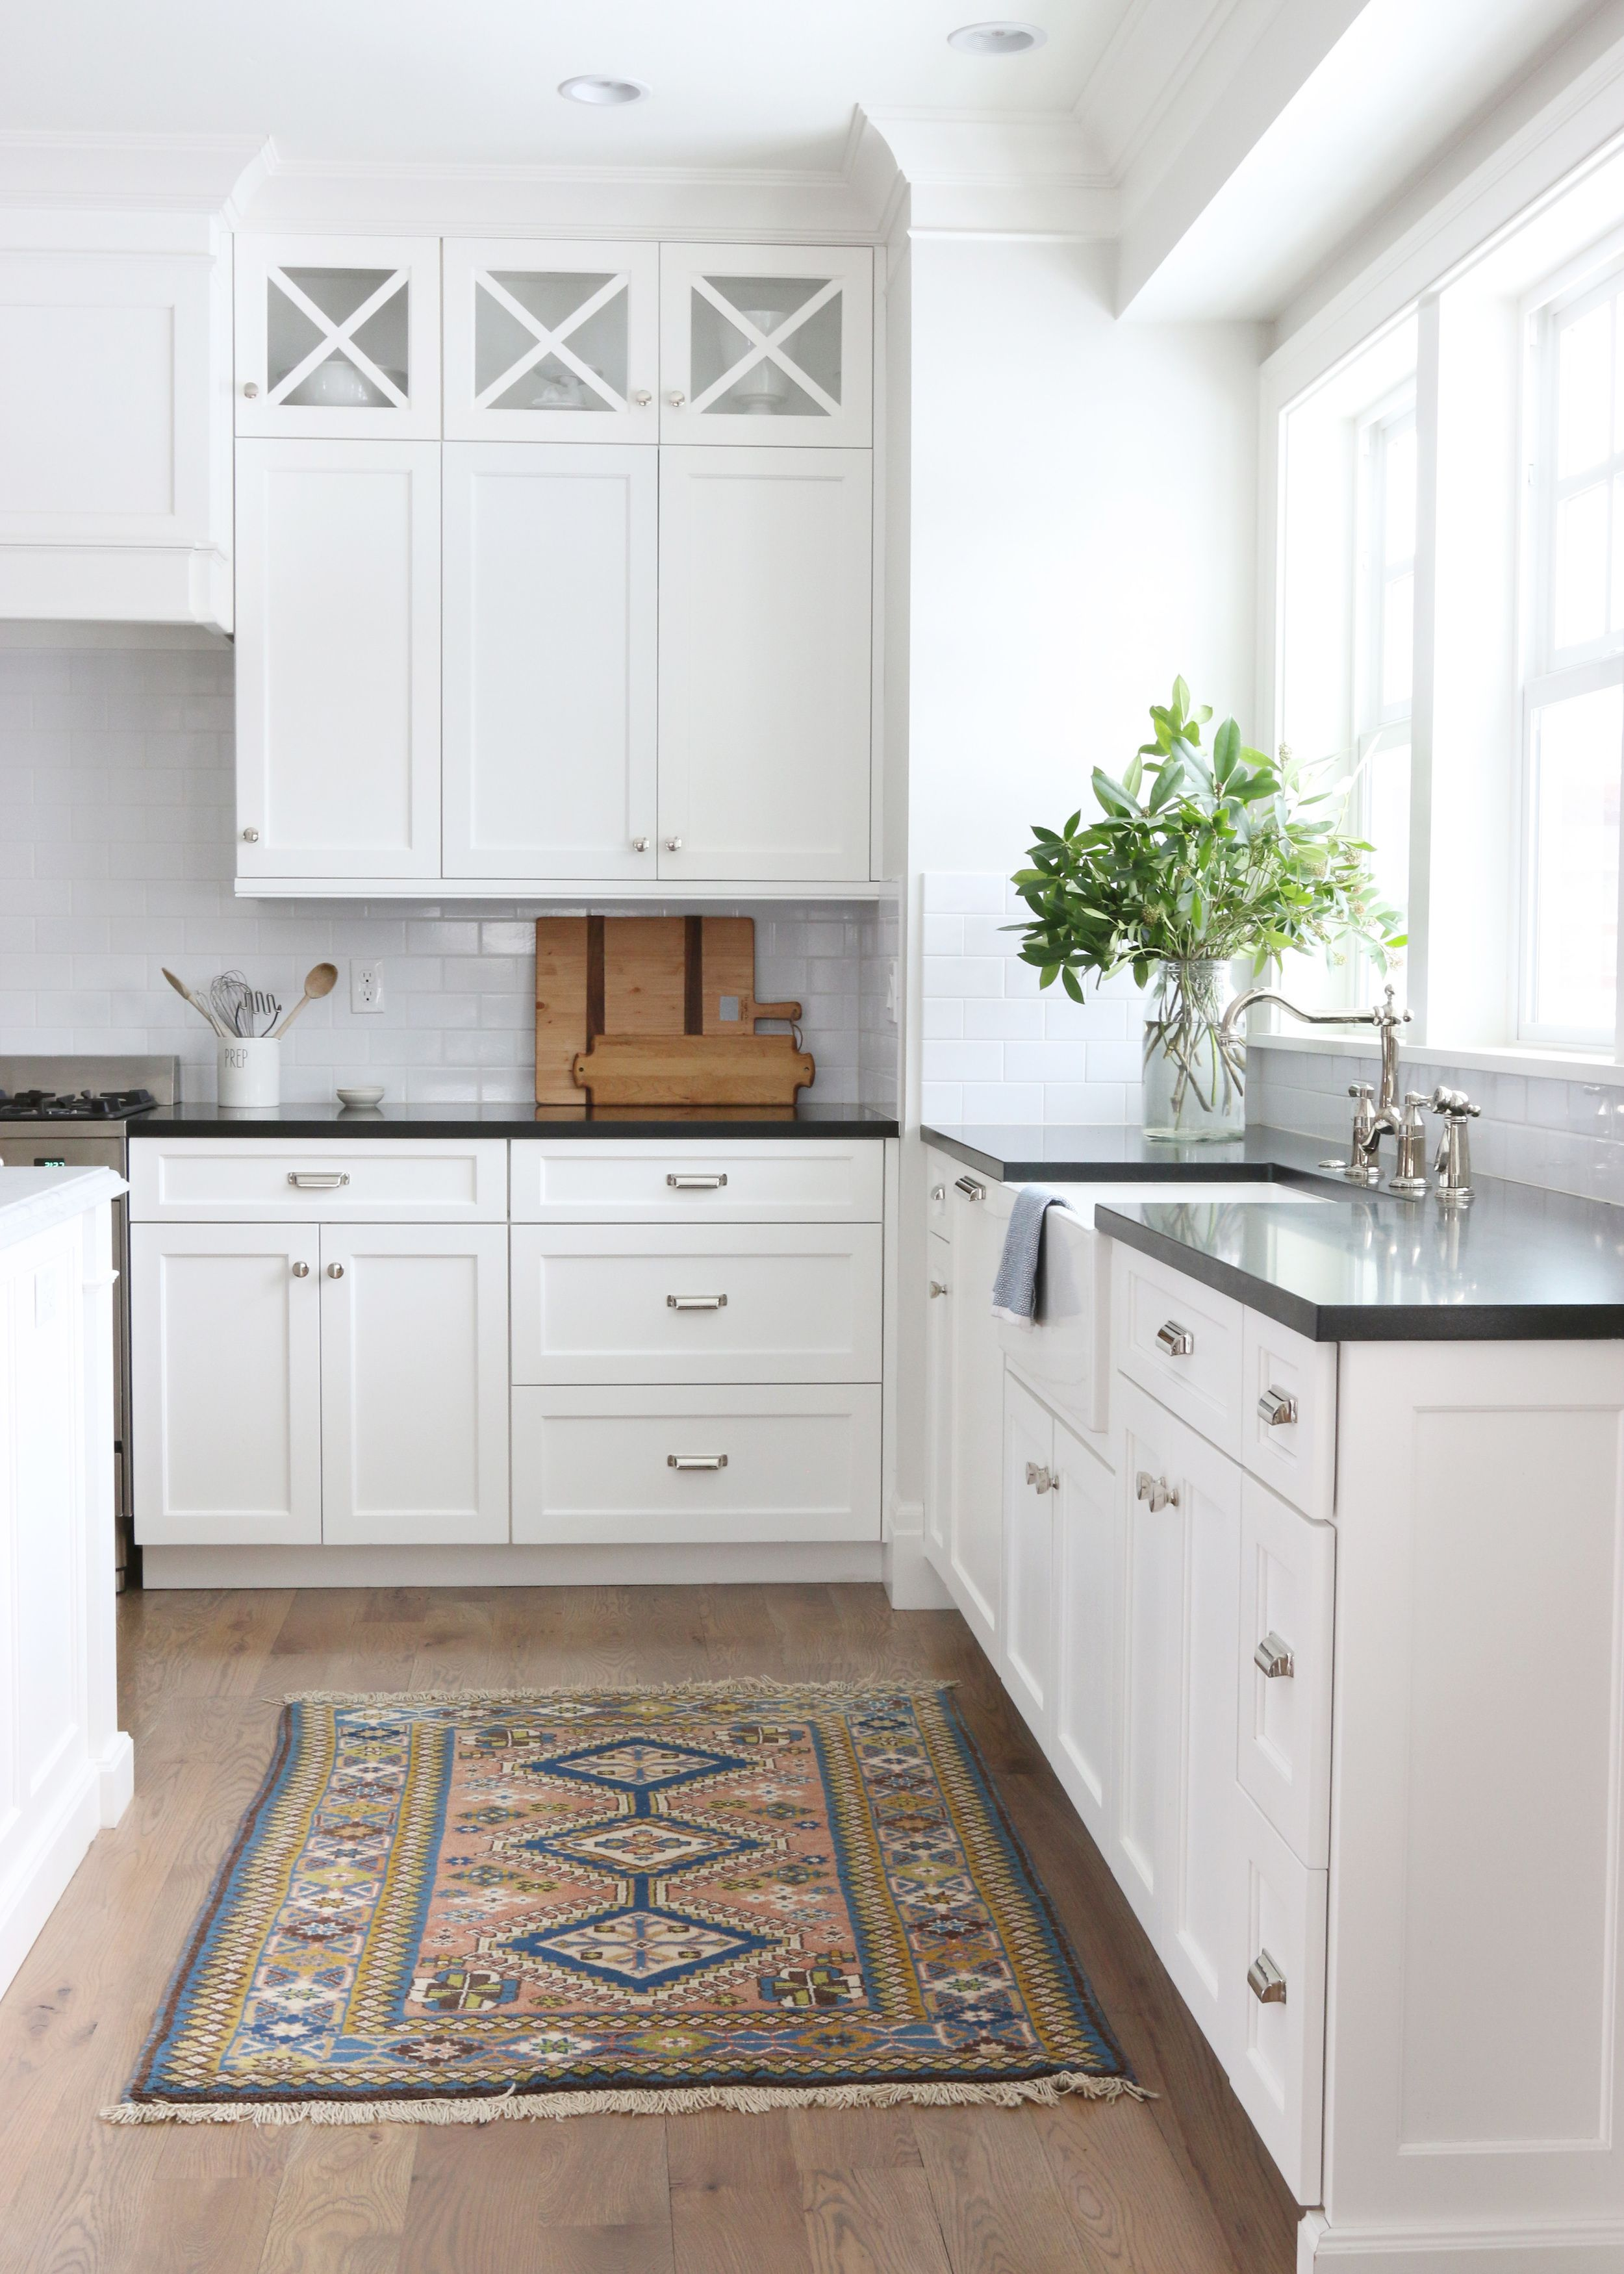 catalog size utensils ceiling for cabinets dishes kitchens how storage small products of way toanize kitchen stewart to ideas clever toanise full martha apartment store best weston